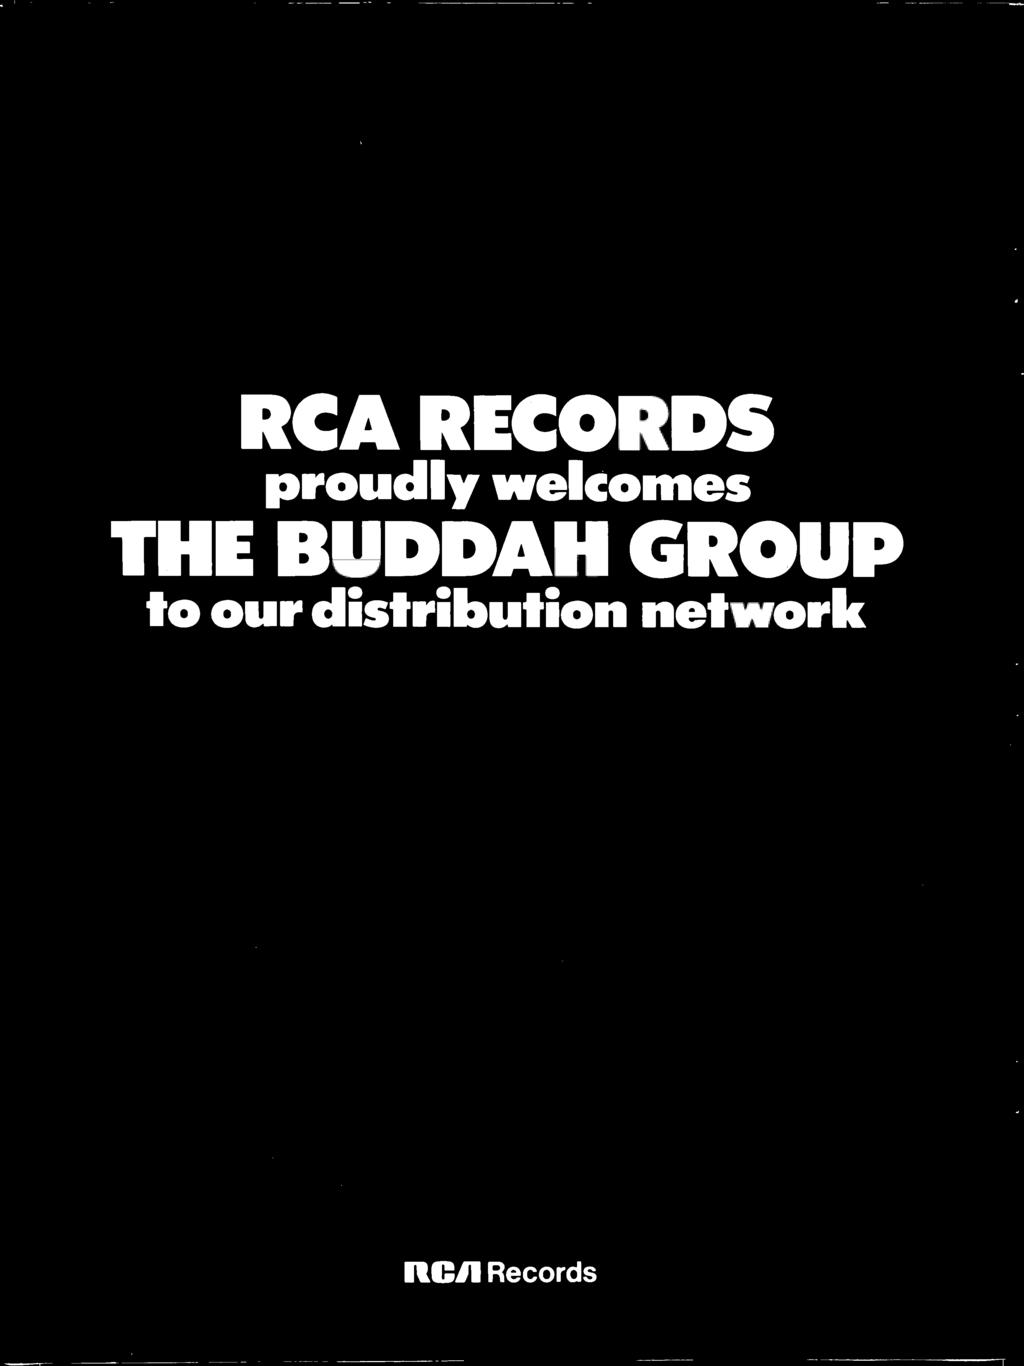 welcomes THE BUDDAH GROUP to